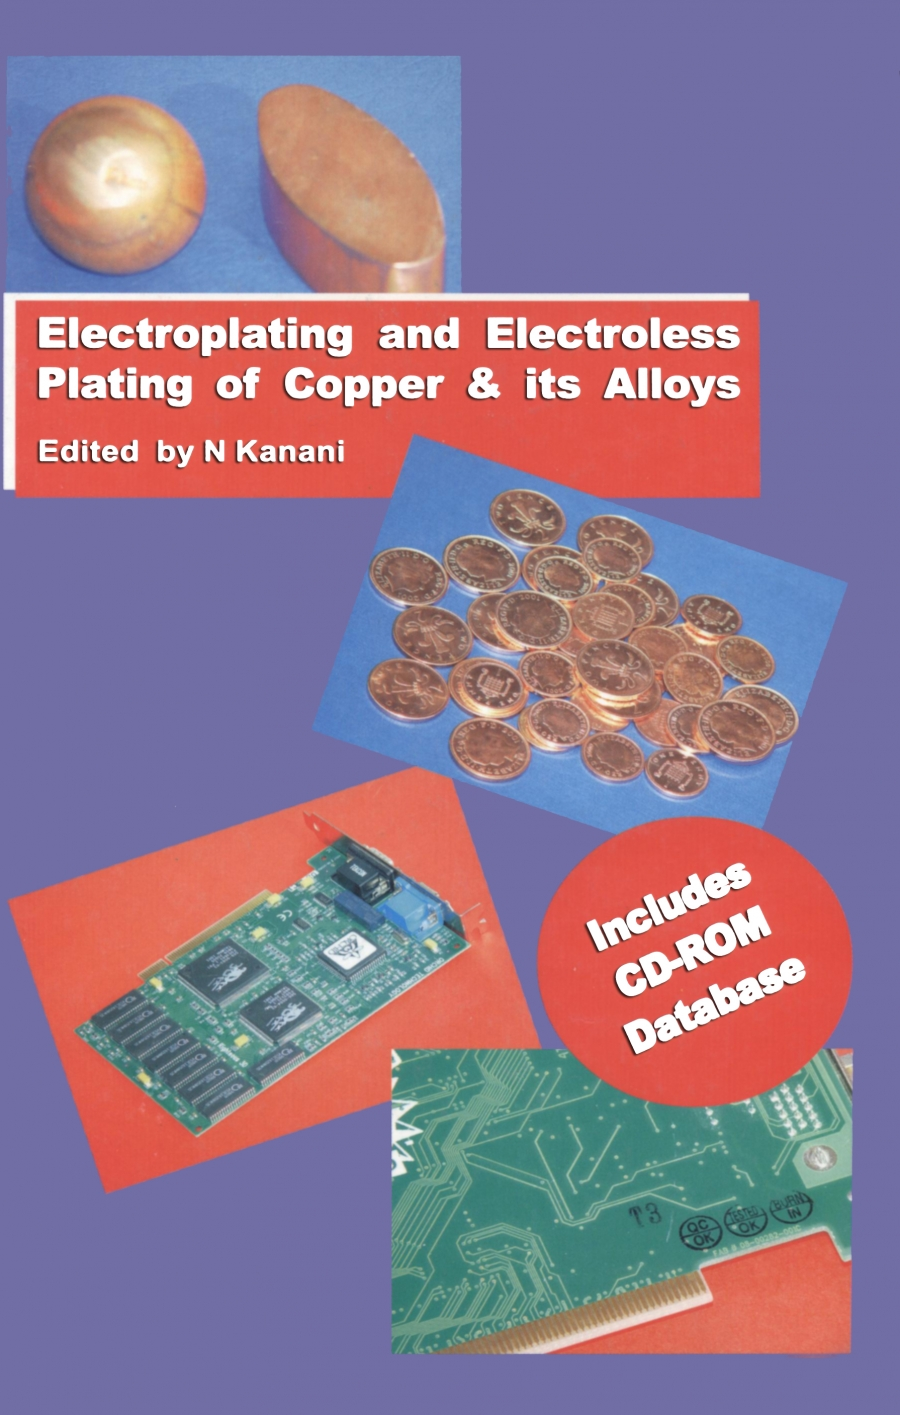 Electroplating and Electroless Plating of Copper & its Alloys